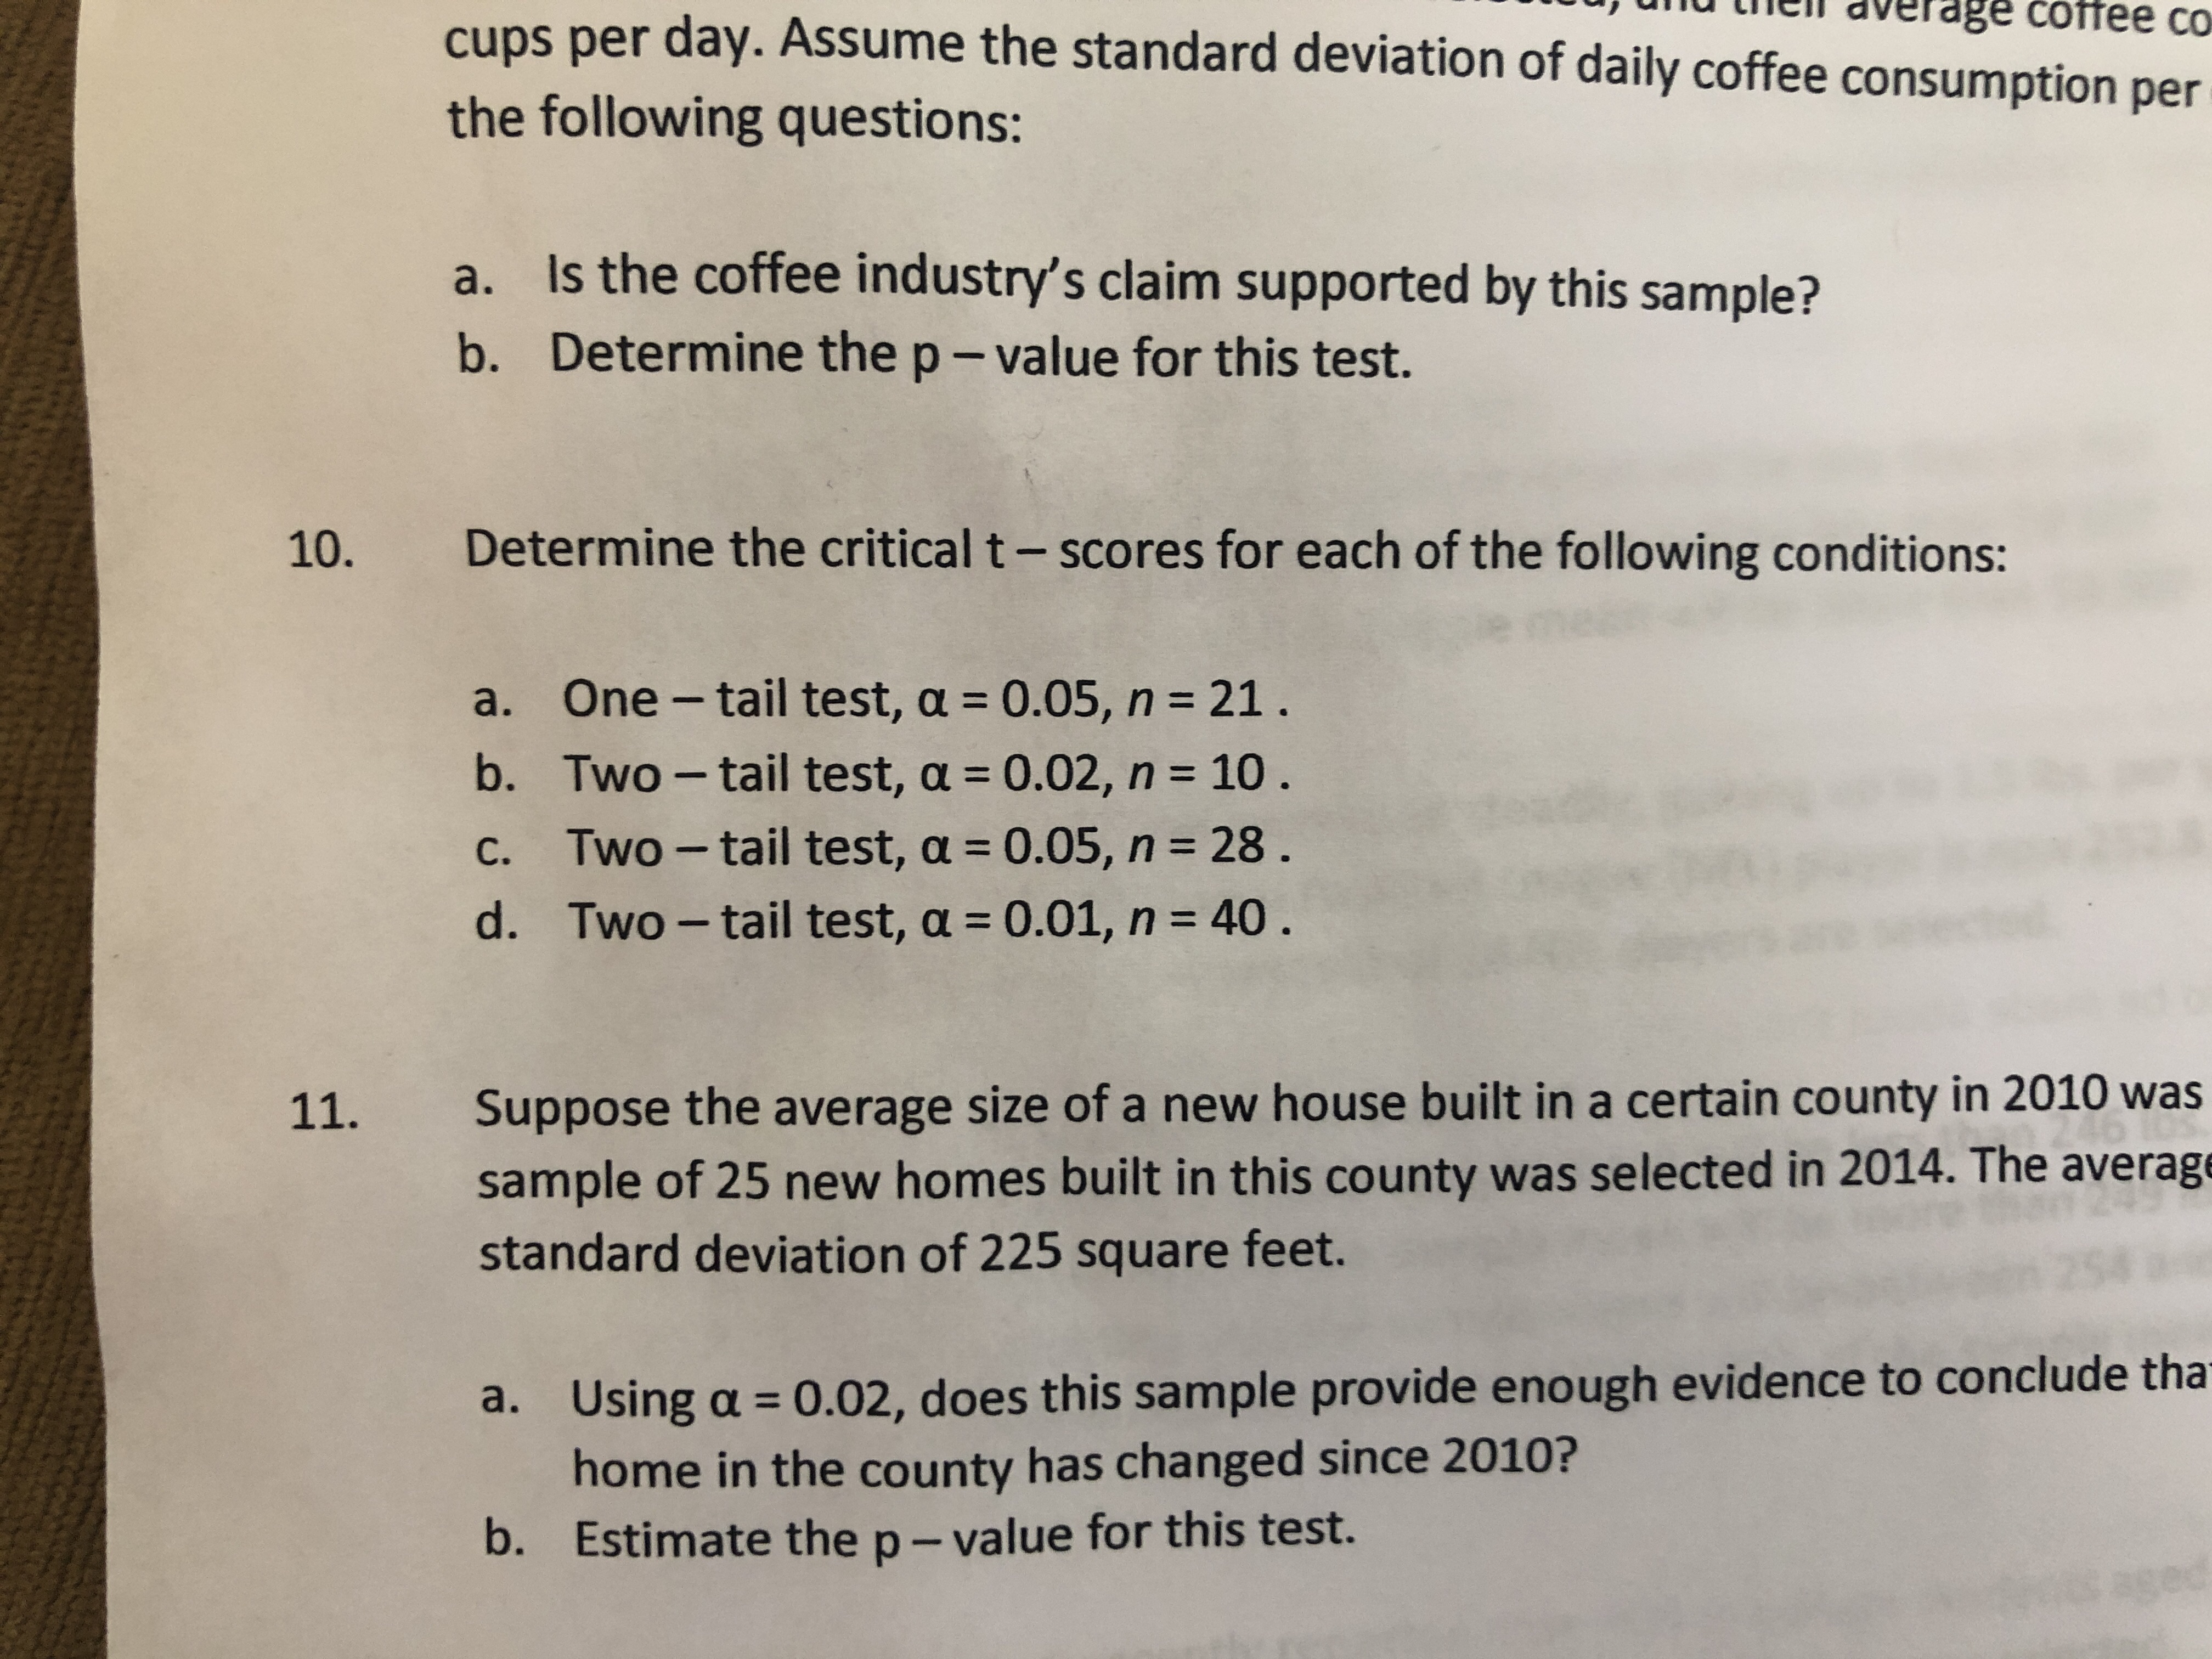 u) uinu tilell dverage coffee co cups per day. Assume the standard deviation of daily coffee consumption per the following questions: Is the coffee industry's claim supported by this sample? Determine the p-value for this test. a. b. Determine the critical t- scores for each of the following conditions: 10. a. One - tail test, a 0.05, n 21. b, Two-tail test, α = 0.02, n = 10. c. Two-tail test, a 0.05, n 28. d. Two- tail test, a 0.01, n 40. Suppose the average size of a new house built in a certain county in 2010 was sample of 25 new homes built in this county was selected in 2014. The average standard deviation of 225 square feet. 11. Using a 0.02, does this sample provide enough evidence to conclude tha home in the county has changed since 2010? Estimate the p- value for this test. a. b.